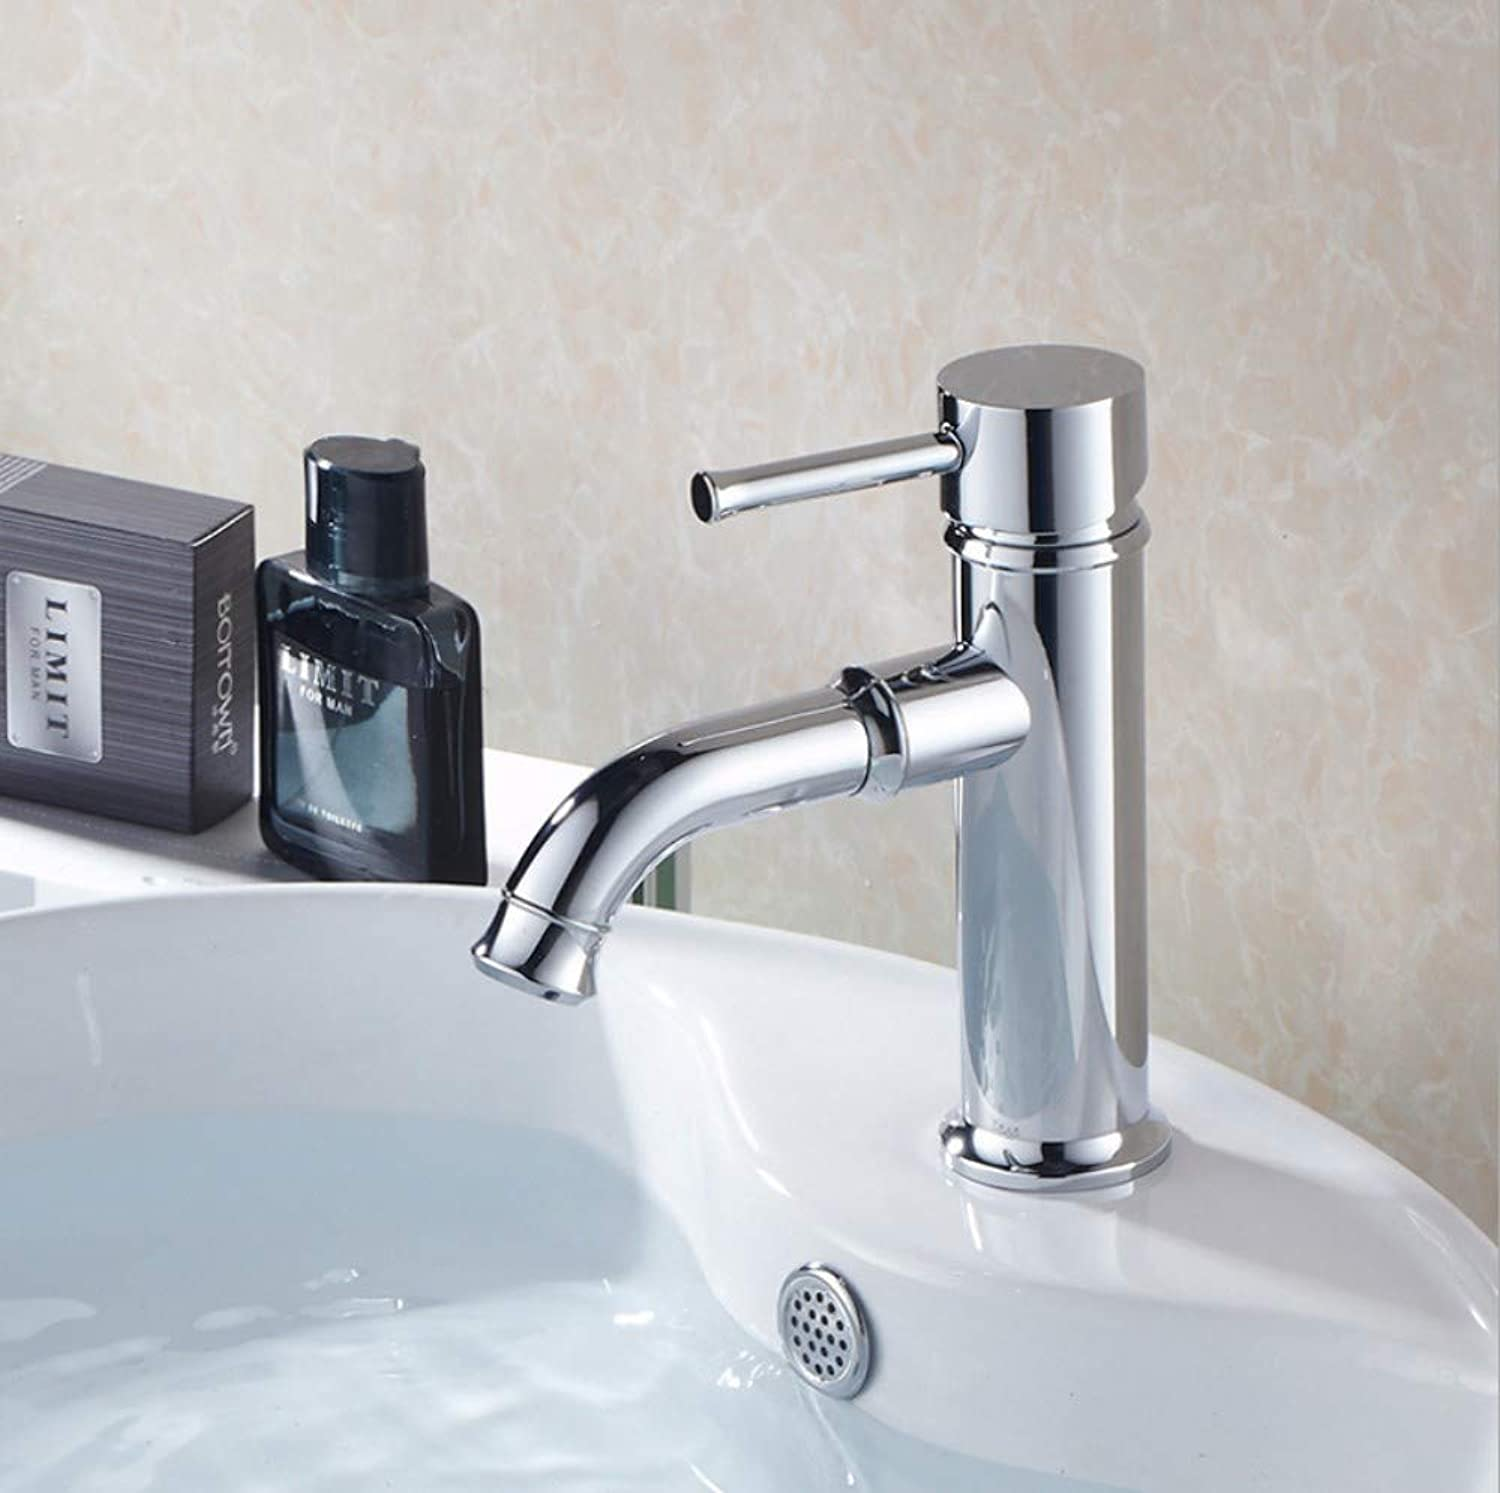 Bathroom Sink Basin Lever Mixer Tap Supply Cold and Hot Water Mixing Faucet Electroplating Basin Faucet